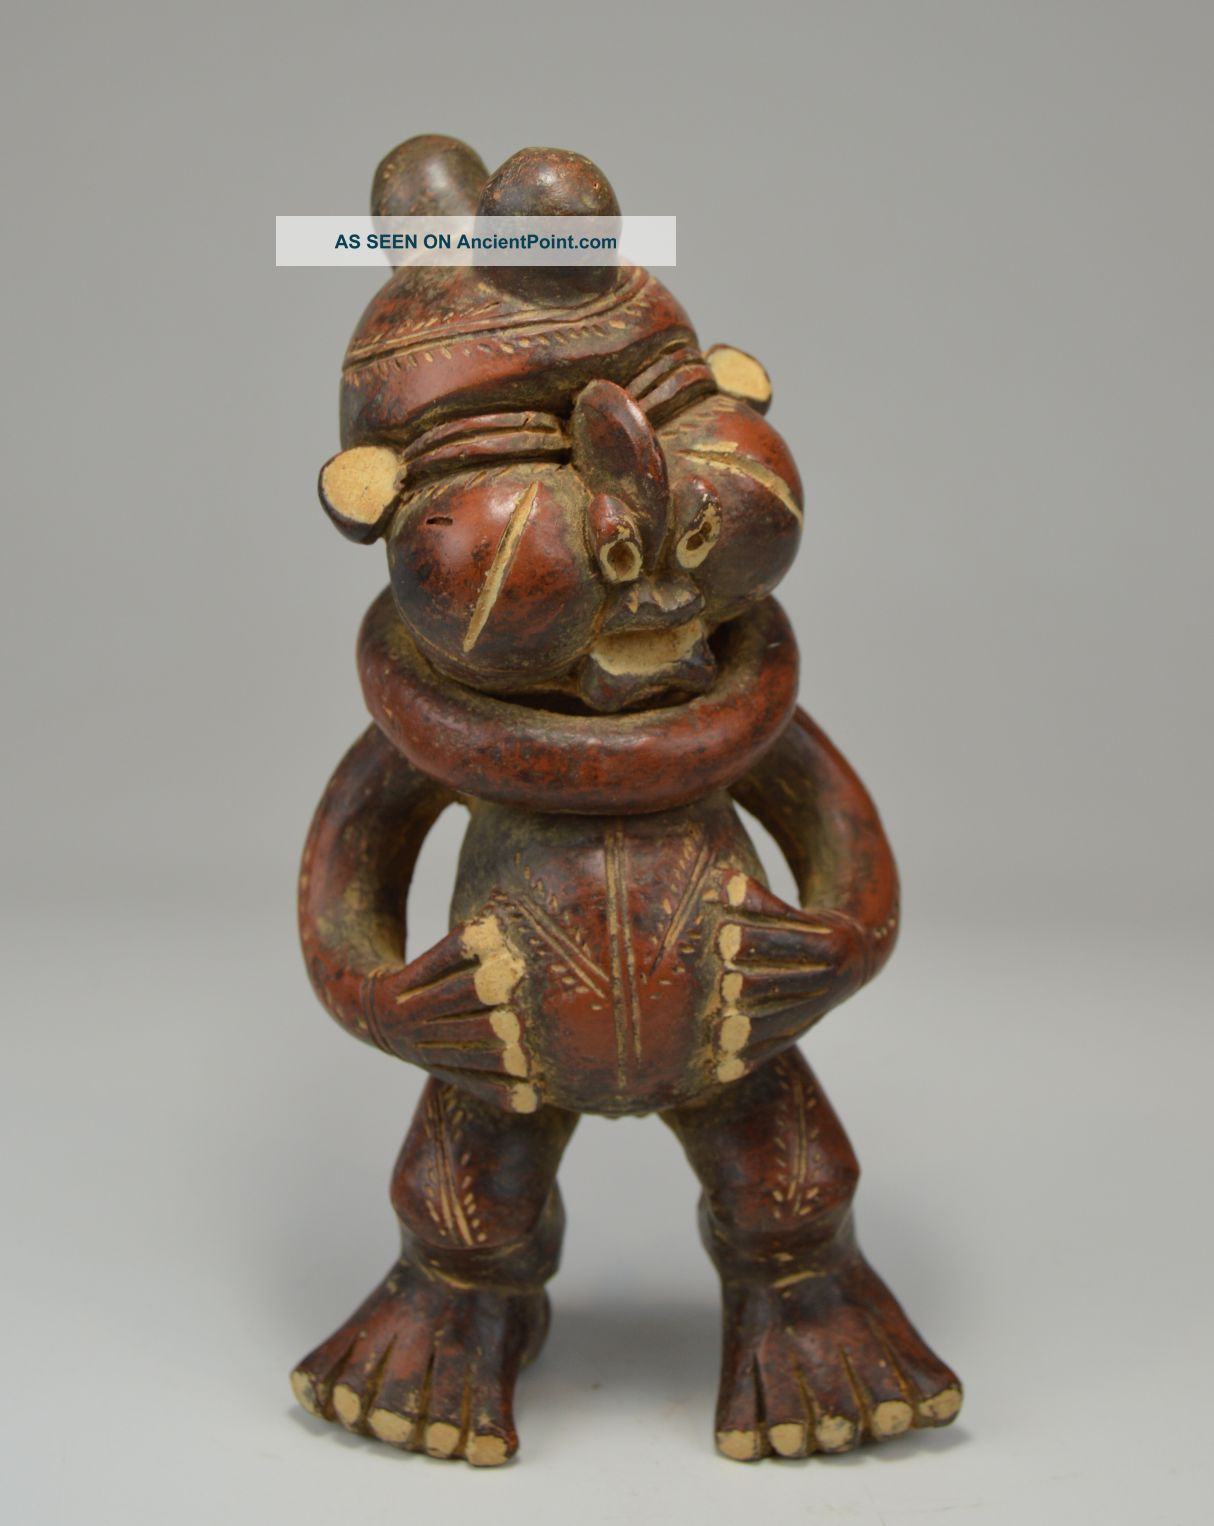 Vintage Tikar Clay Pygmy Sculpture With Collar Around Neck,  African Art Sculptures & Statues photo